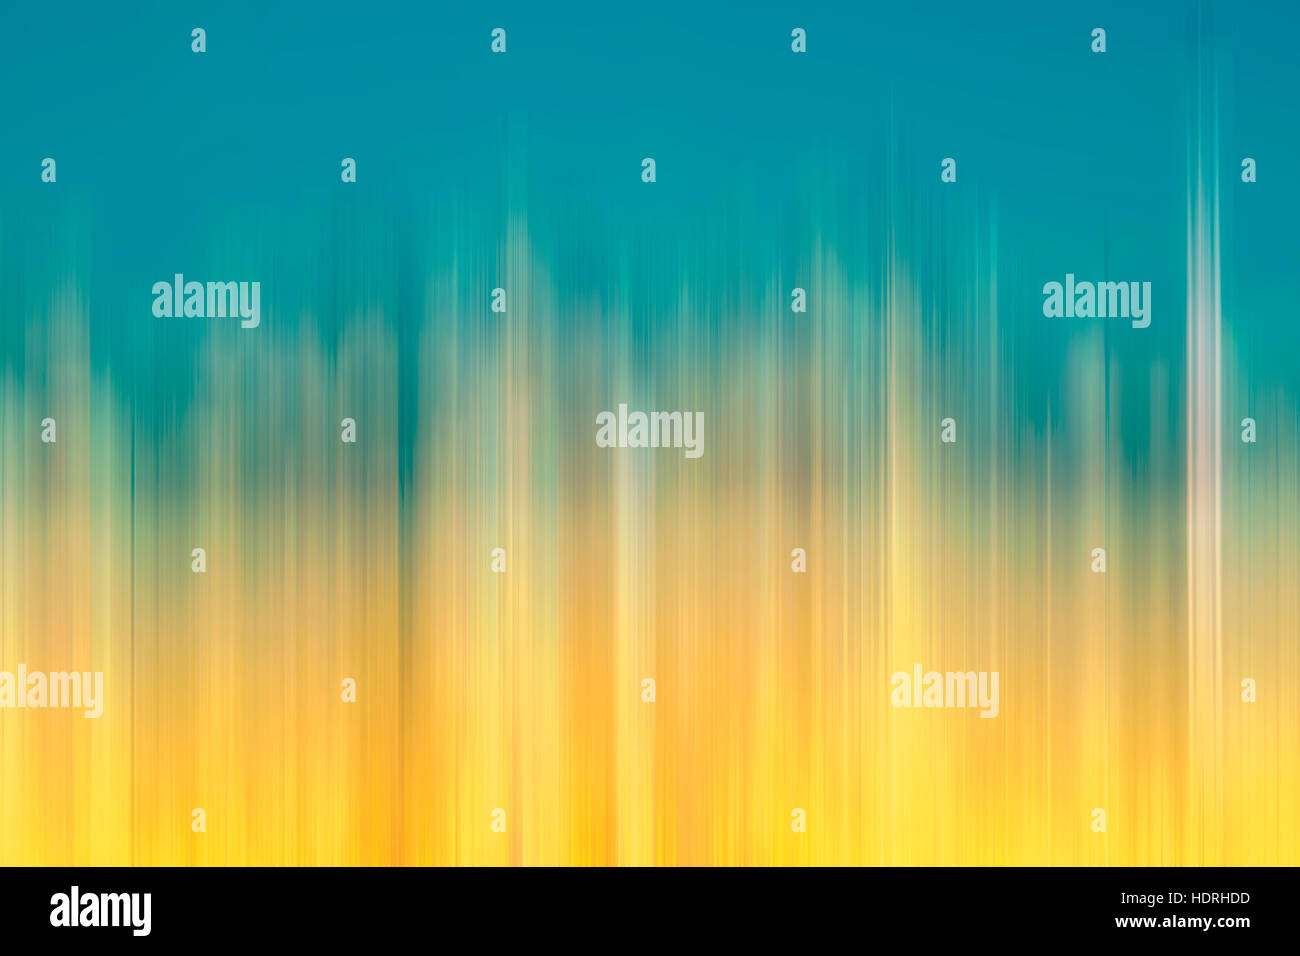 Motion Blurred Abstract Blue And Yellow Background Or Wallpaper Stock Photo Alamy